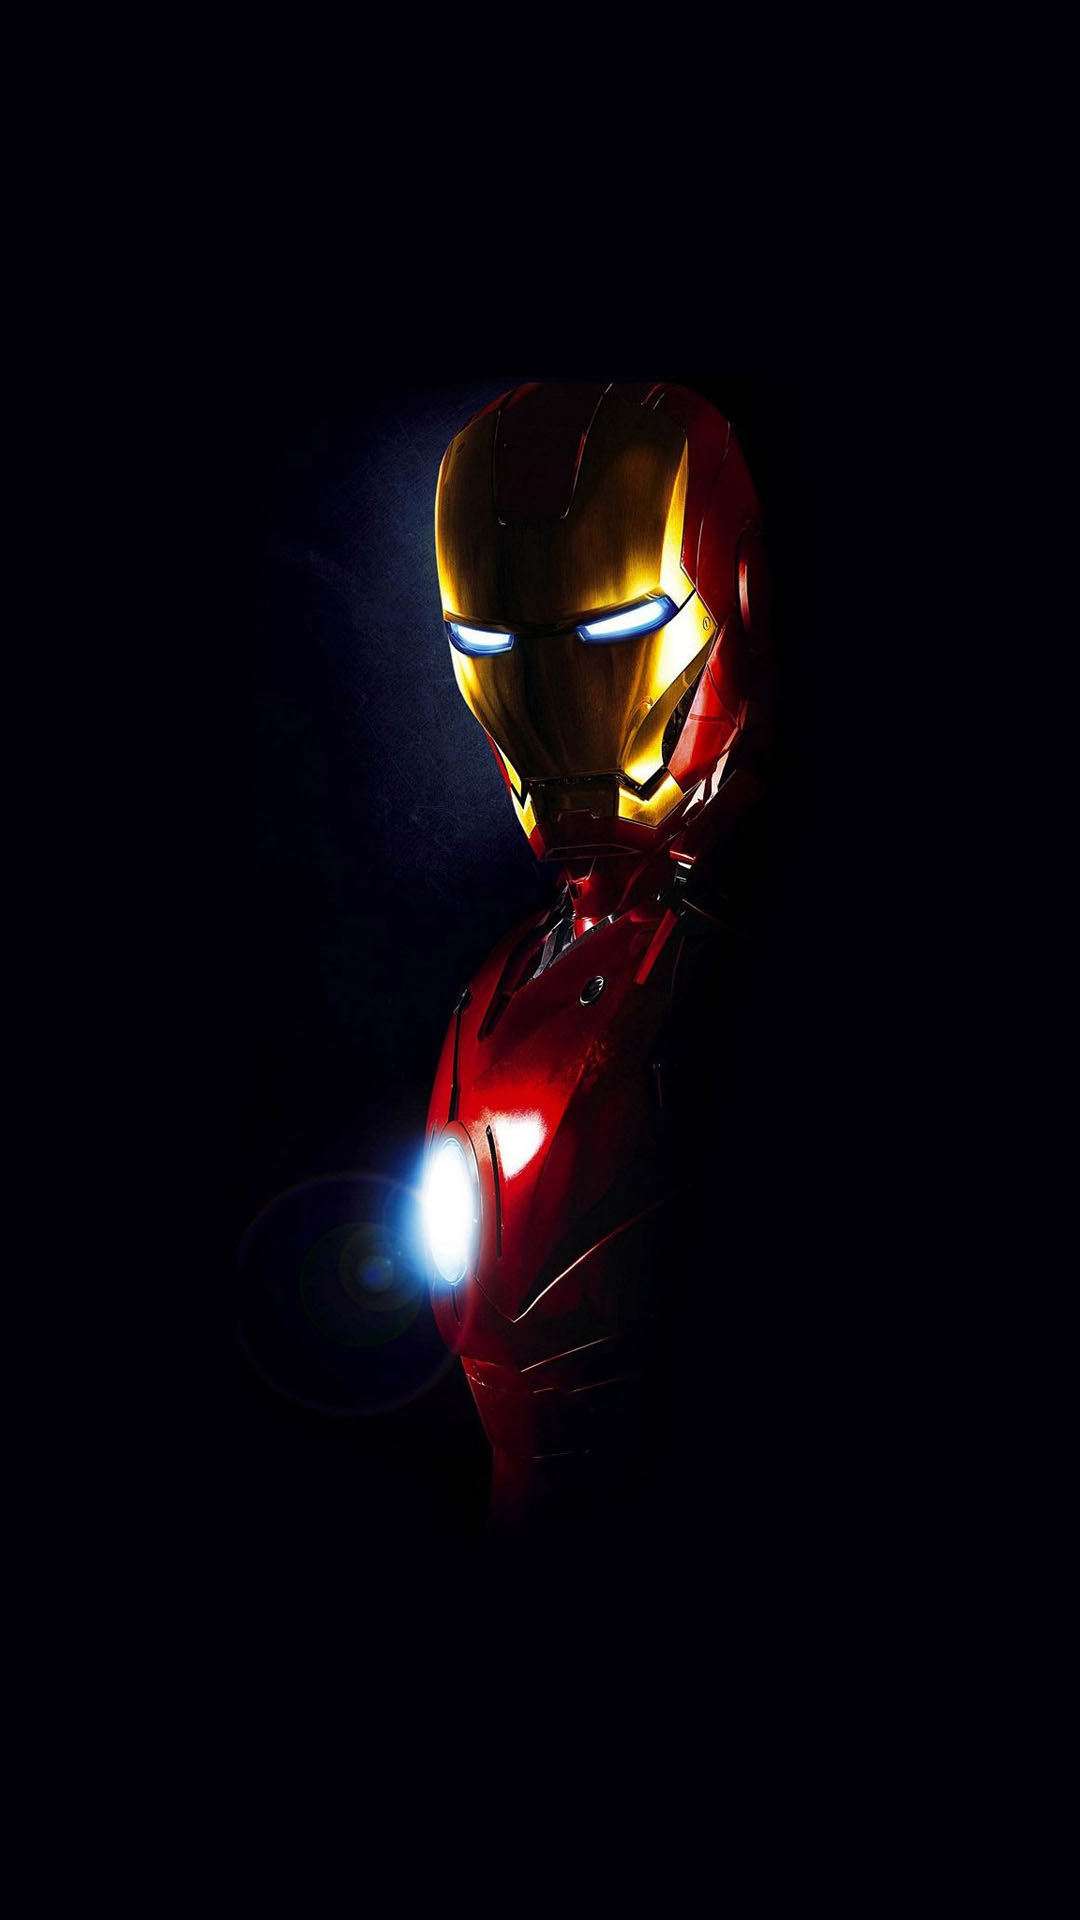 HTC HTC One Wallpapers Iron man android wallpaper Android Wallpapers 1080x1920